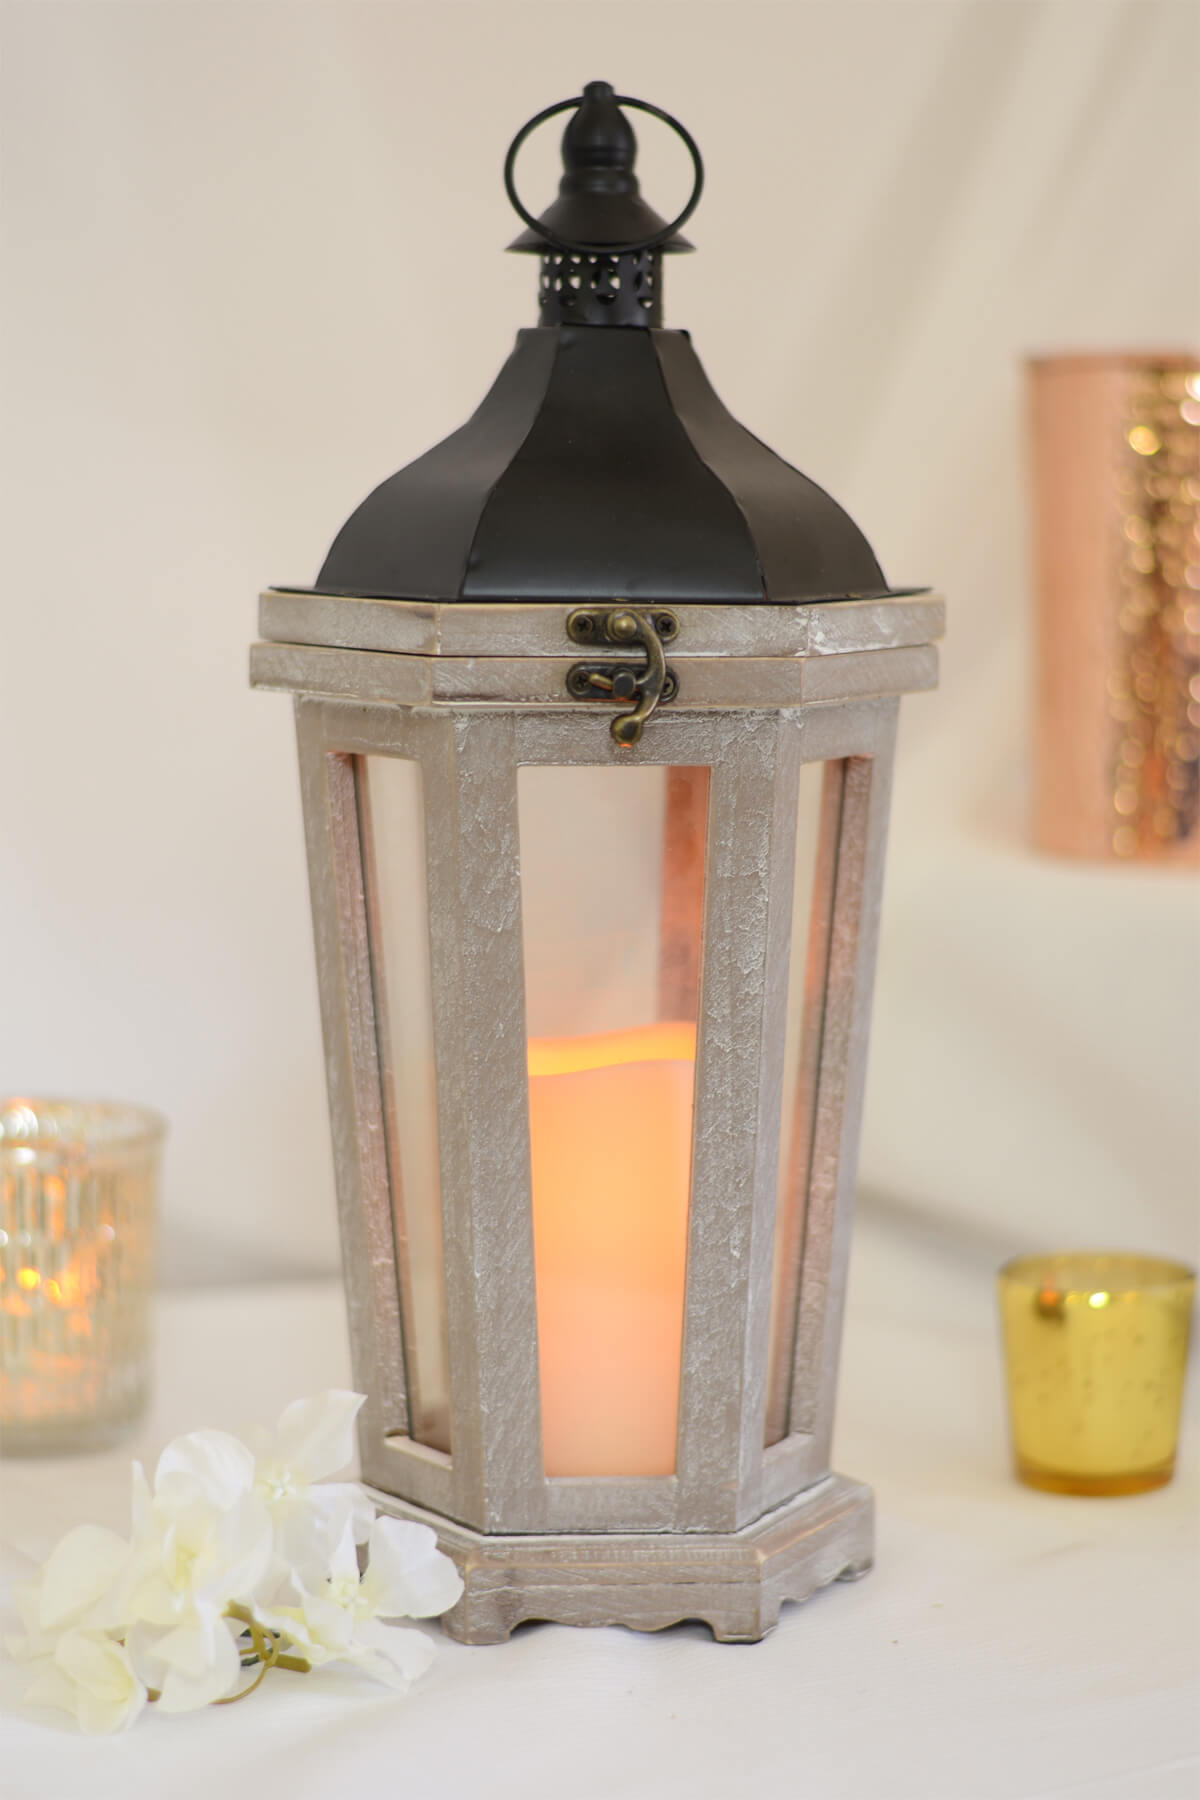 Tall Wood Lantern With Led Candle 17 25in